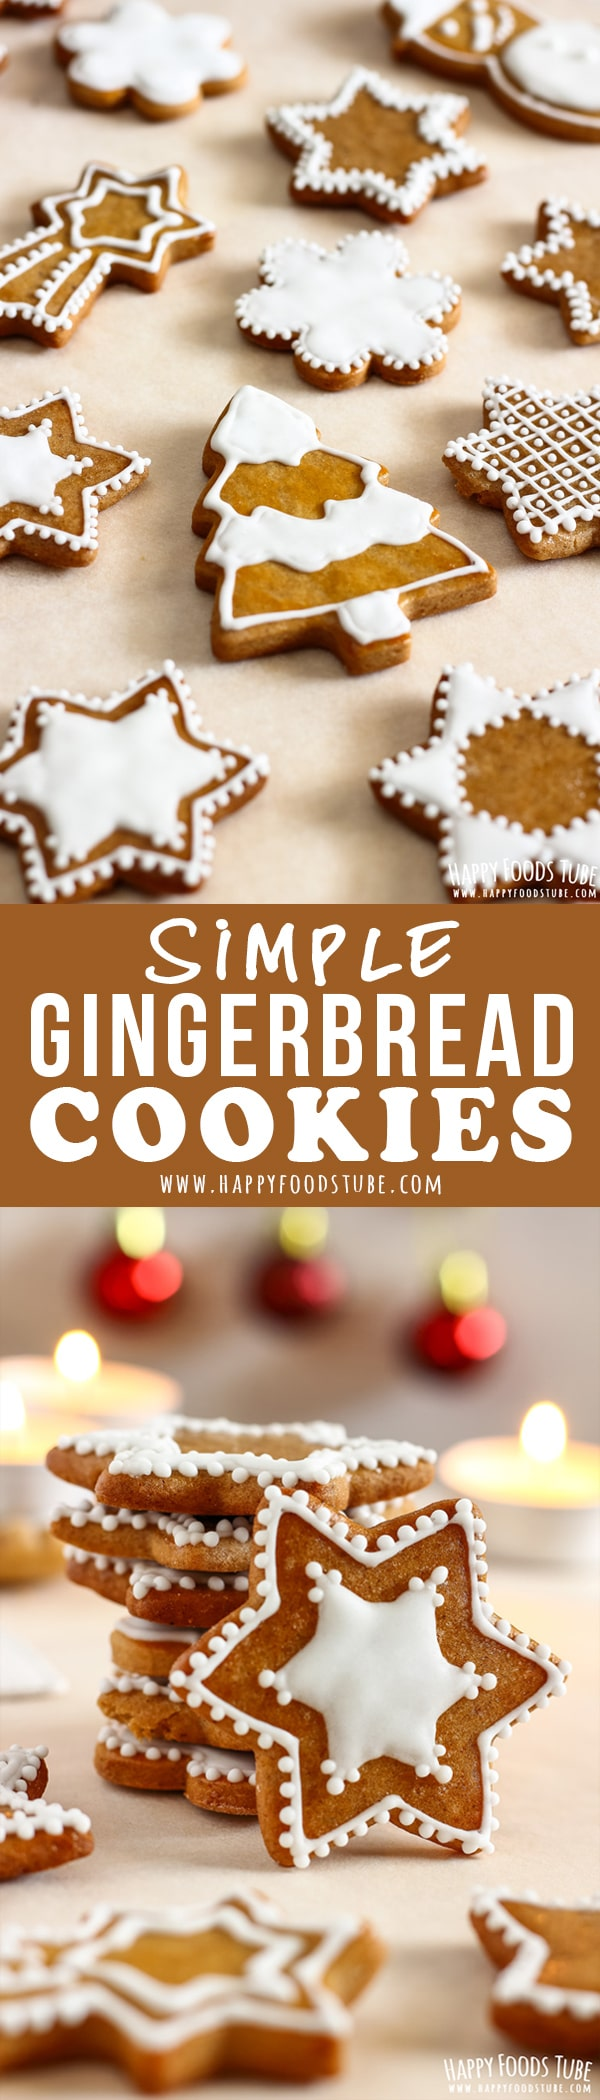 These Simple Gingerbread cookies make a great edible Christmas gift. They can be also turned into Christmas ornaments! Honey flavored dough makes them extra delicious. #homemade #gingerbreadcookies #simple #holidays #christmas #gingerbread #cookies #recipe #smallbatch #ornaments #christmascookies